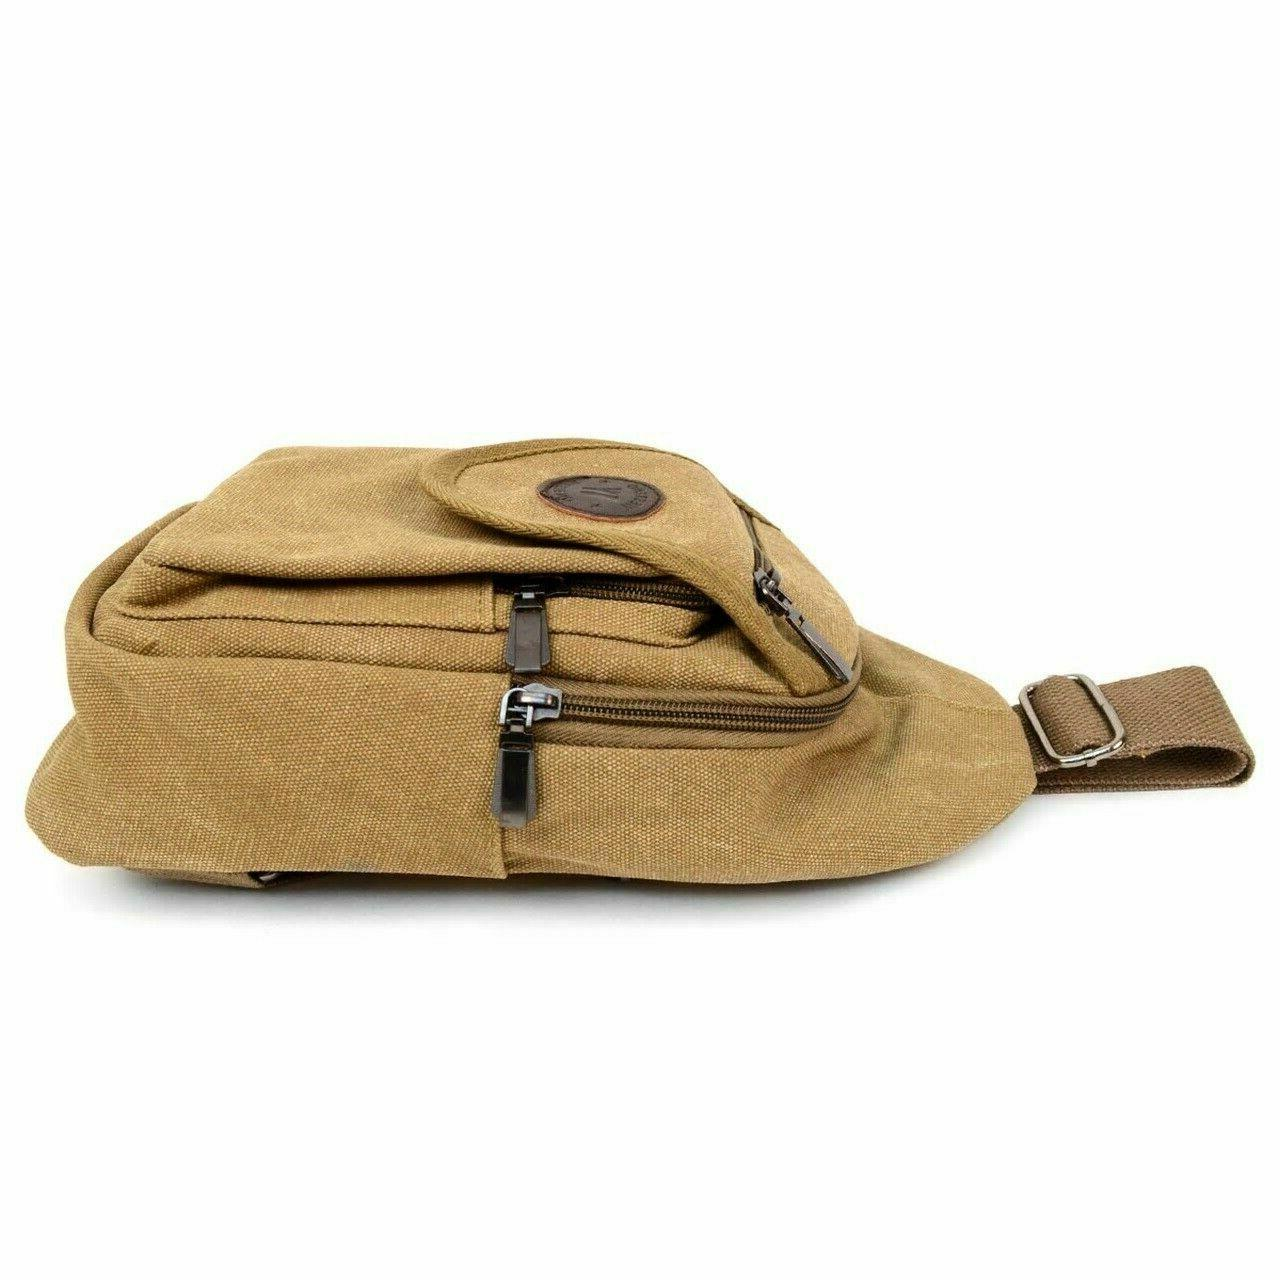 NWT Canvas Sling Bag Backpack Purse